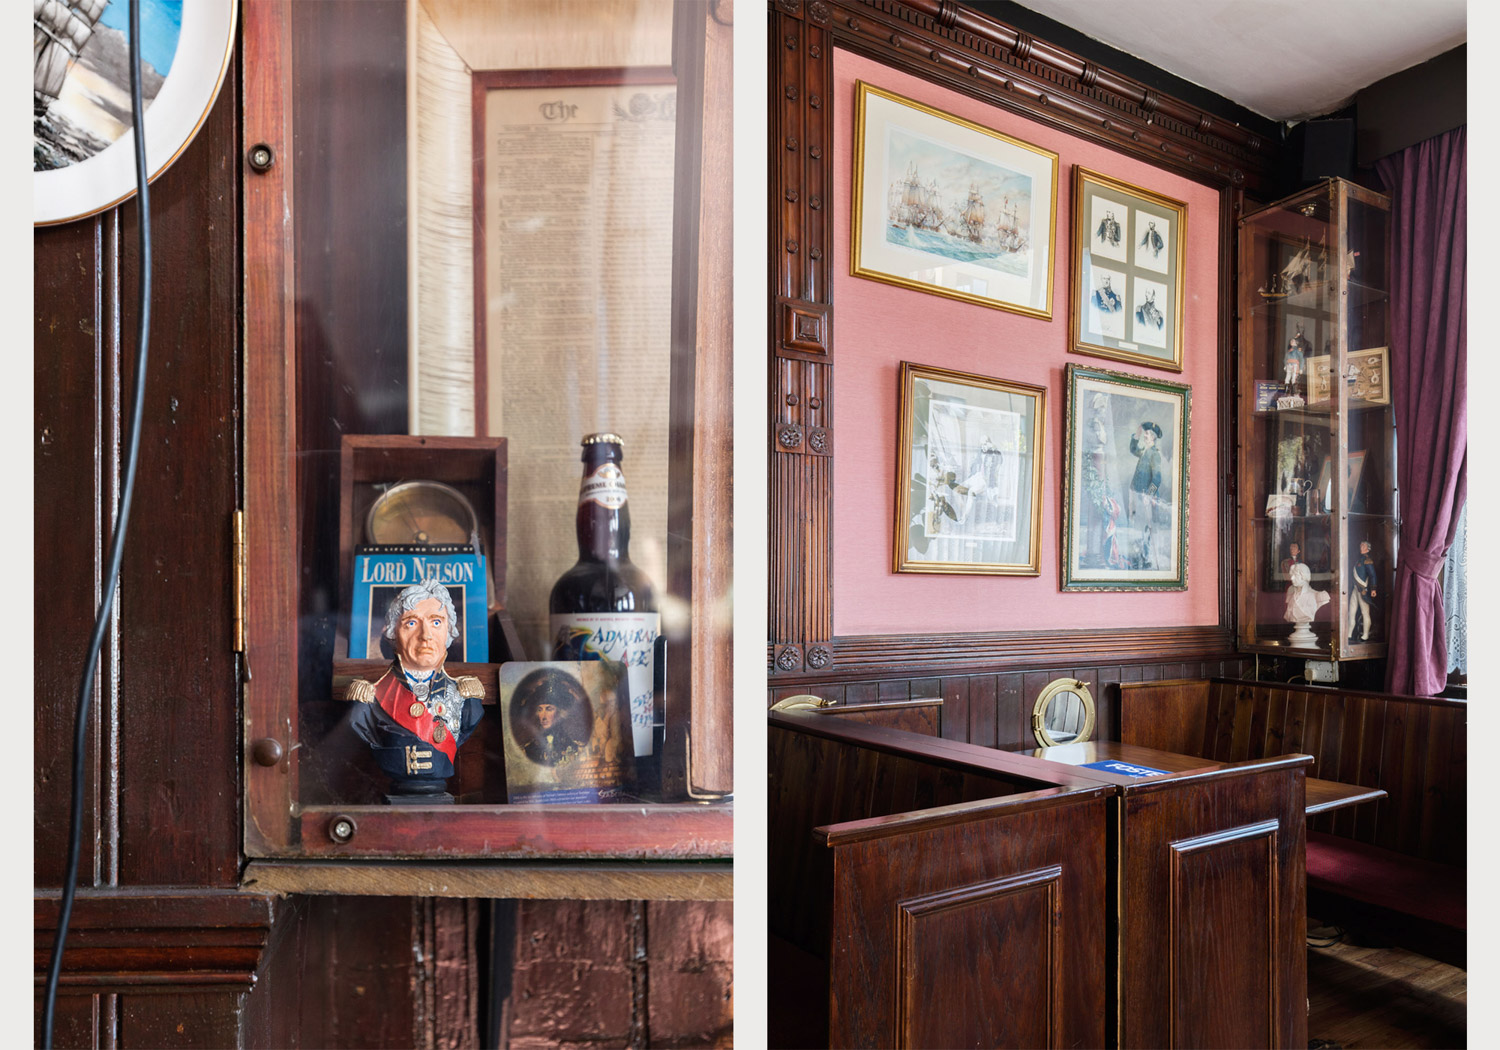 Lord Nelson – Image by Alexander Christie-3